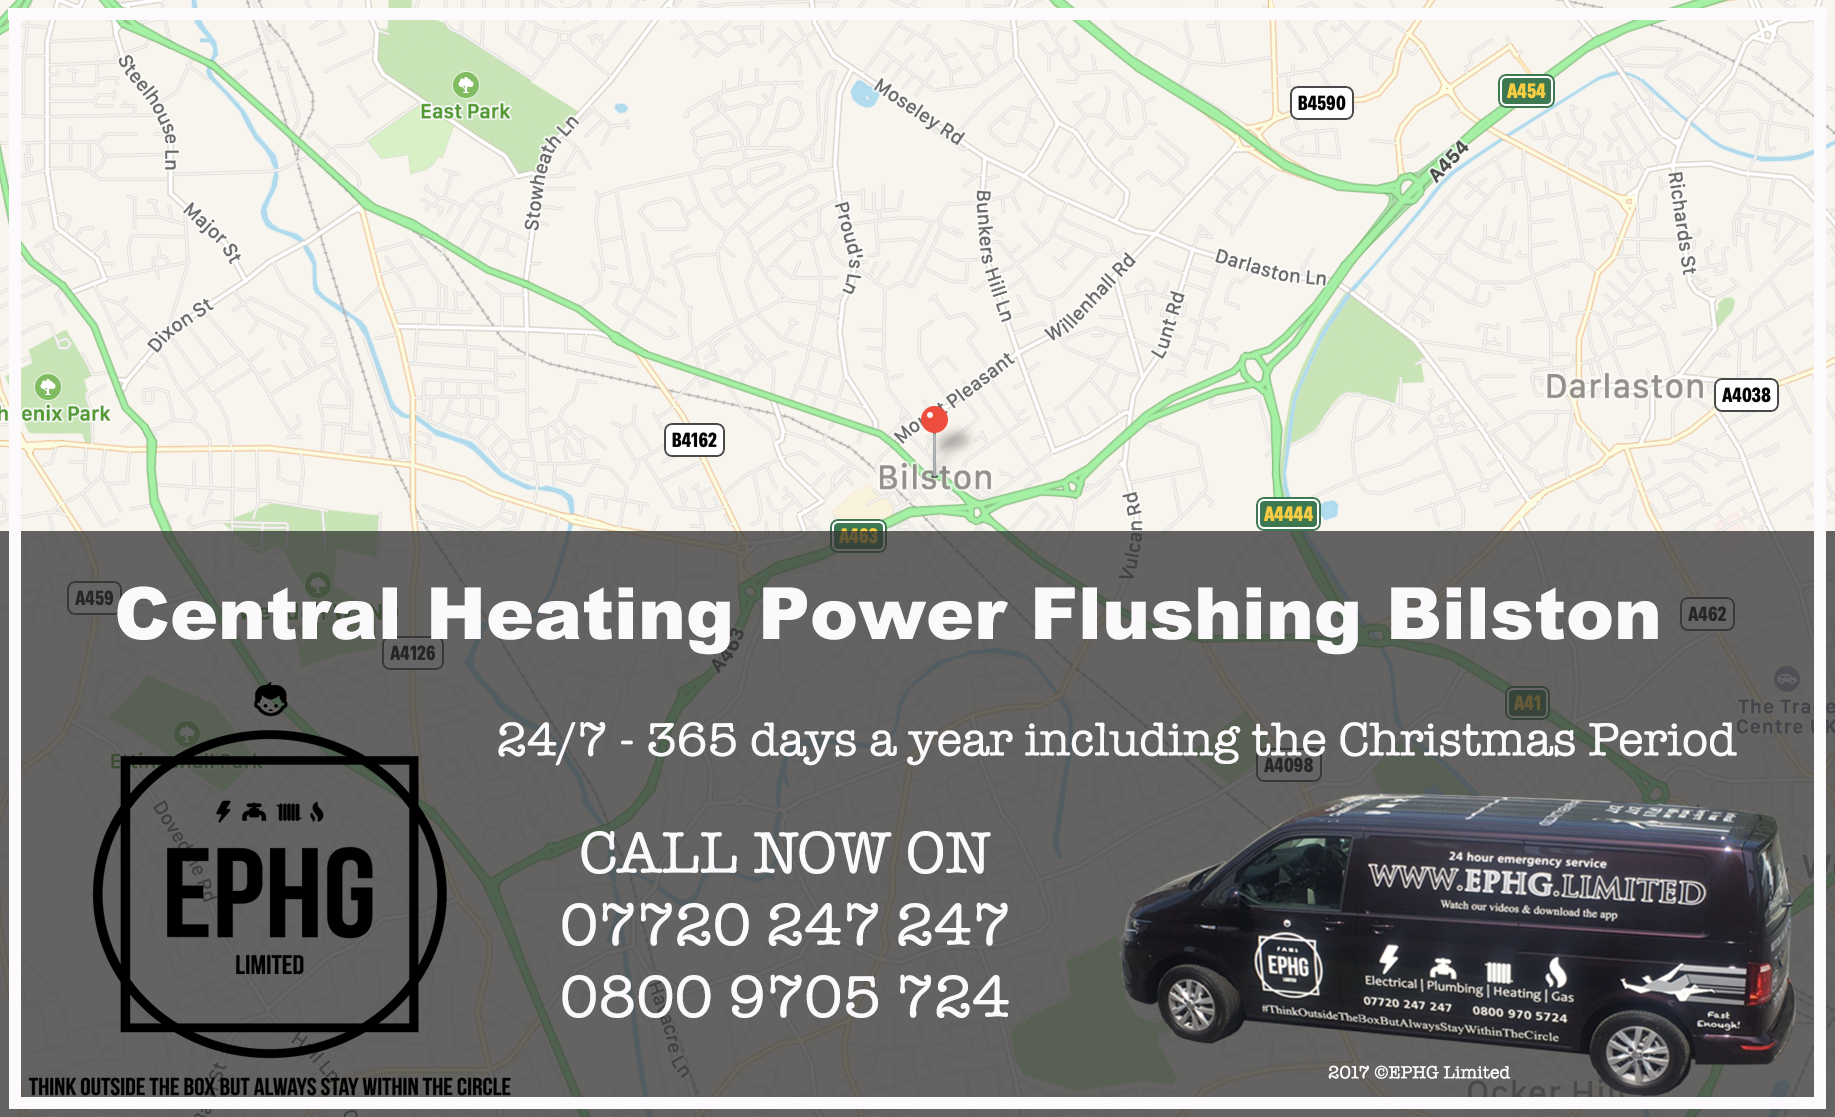 Central Heating Power Flush Bilston